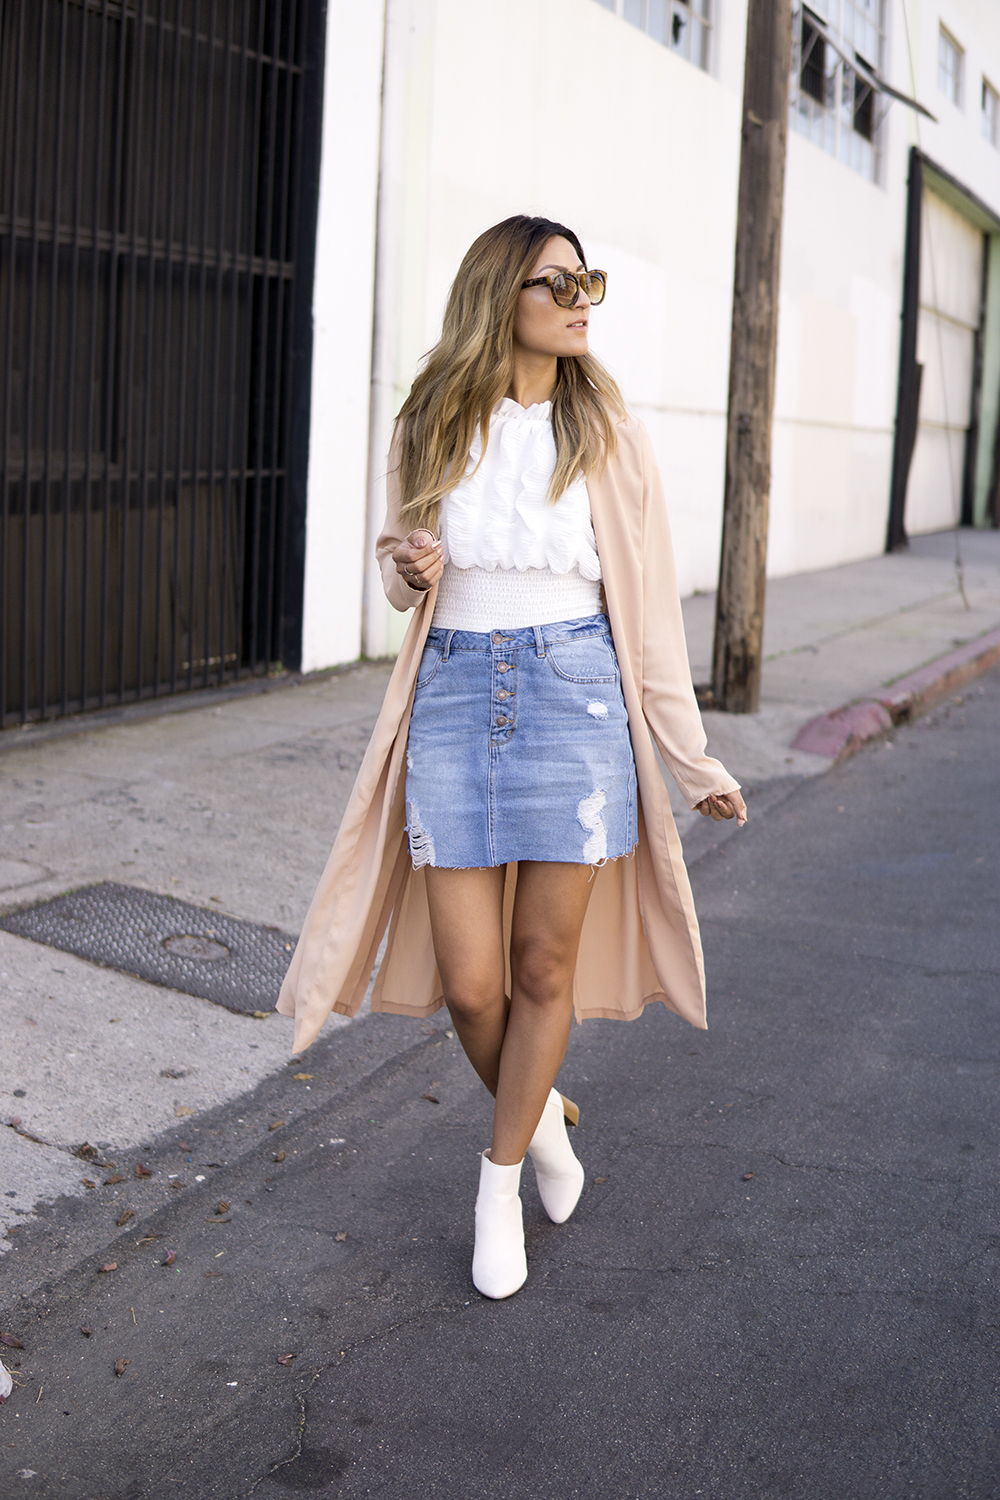 Five Instagram Tips, instagram, tips, melrodstyle, ootd, forever 21, street style, blogger style, la blogger, bloggers, fashion blogger, style, latina blogger, hispanic blogger, mexican blogger